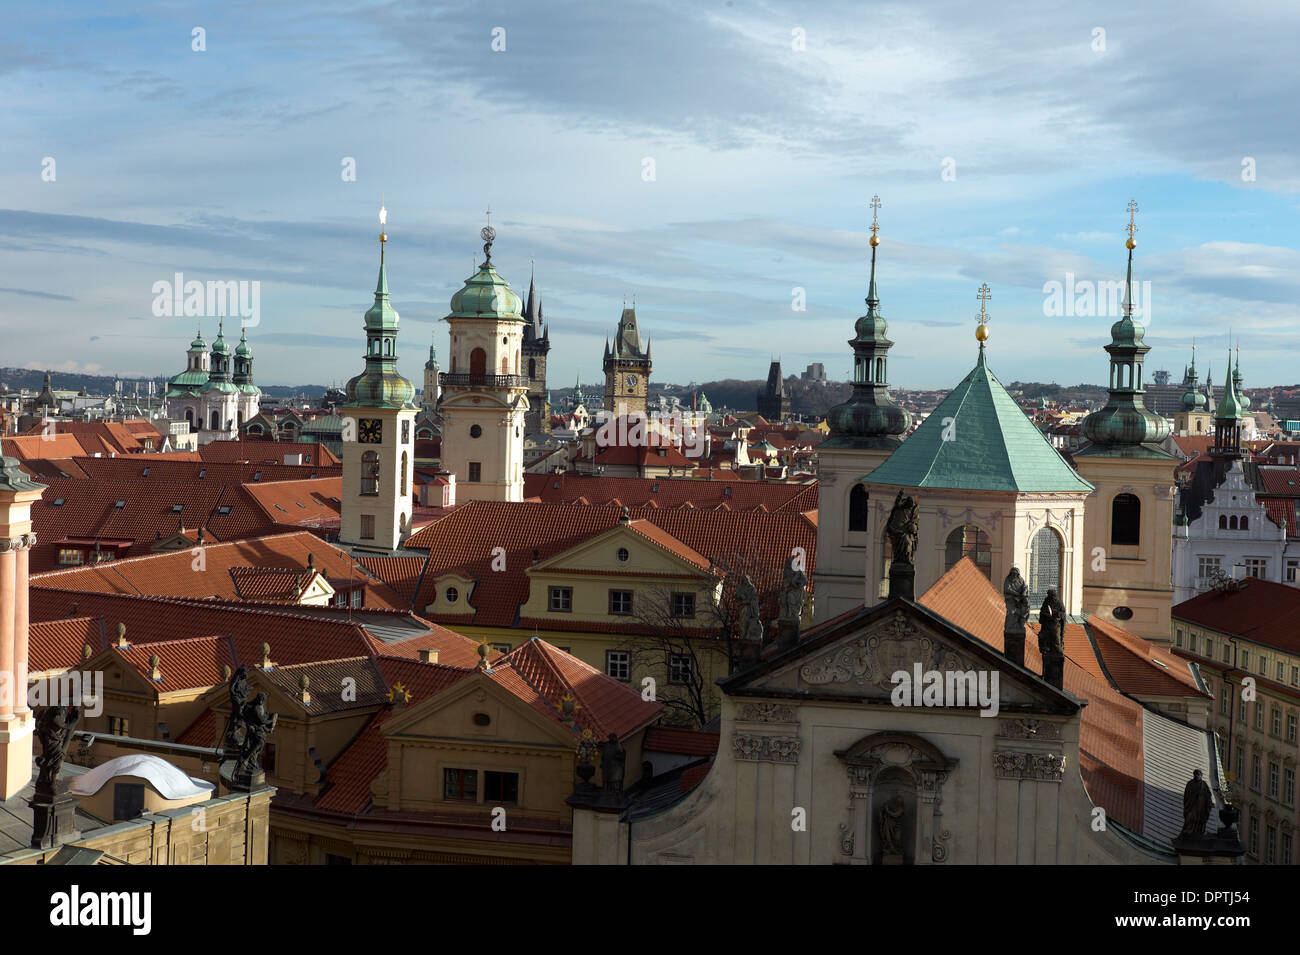 View across the Spires of the Old Town area of Prague from the Old Town Bridge Tower staromestska mostecka - Stock Image